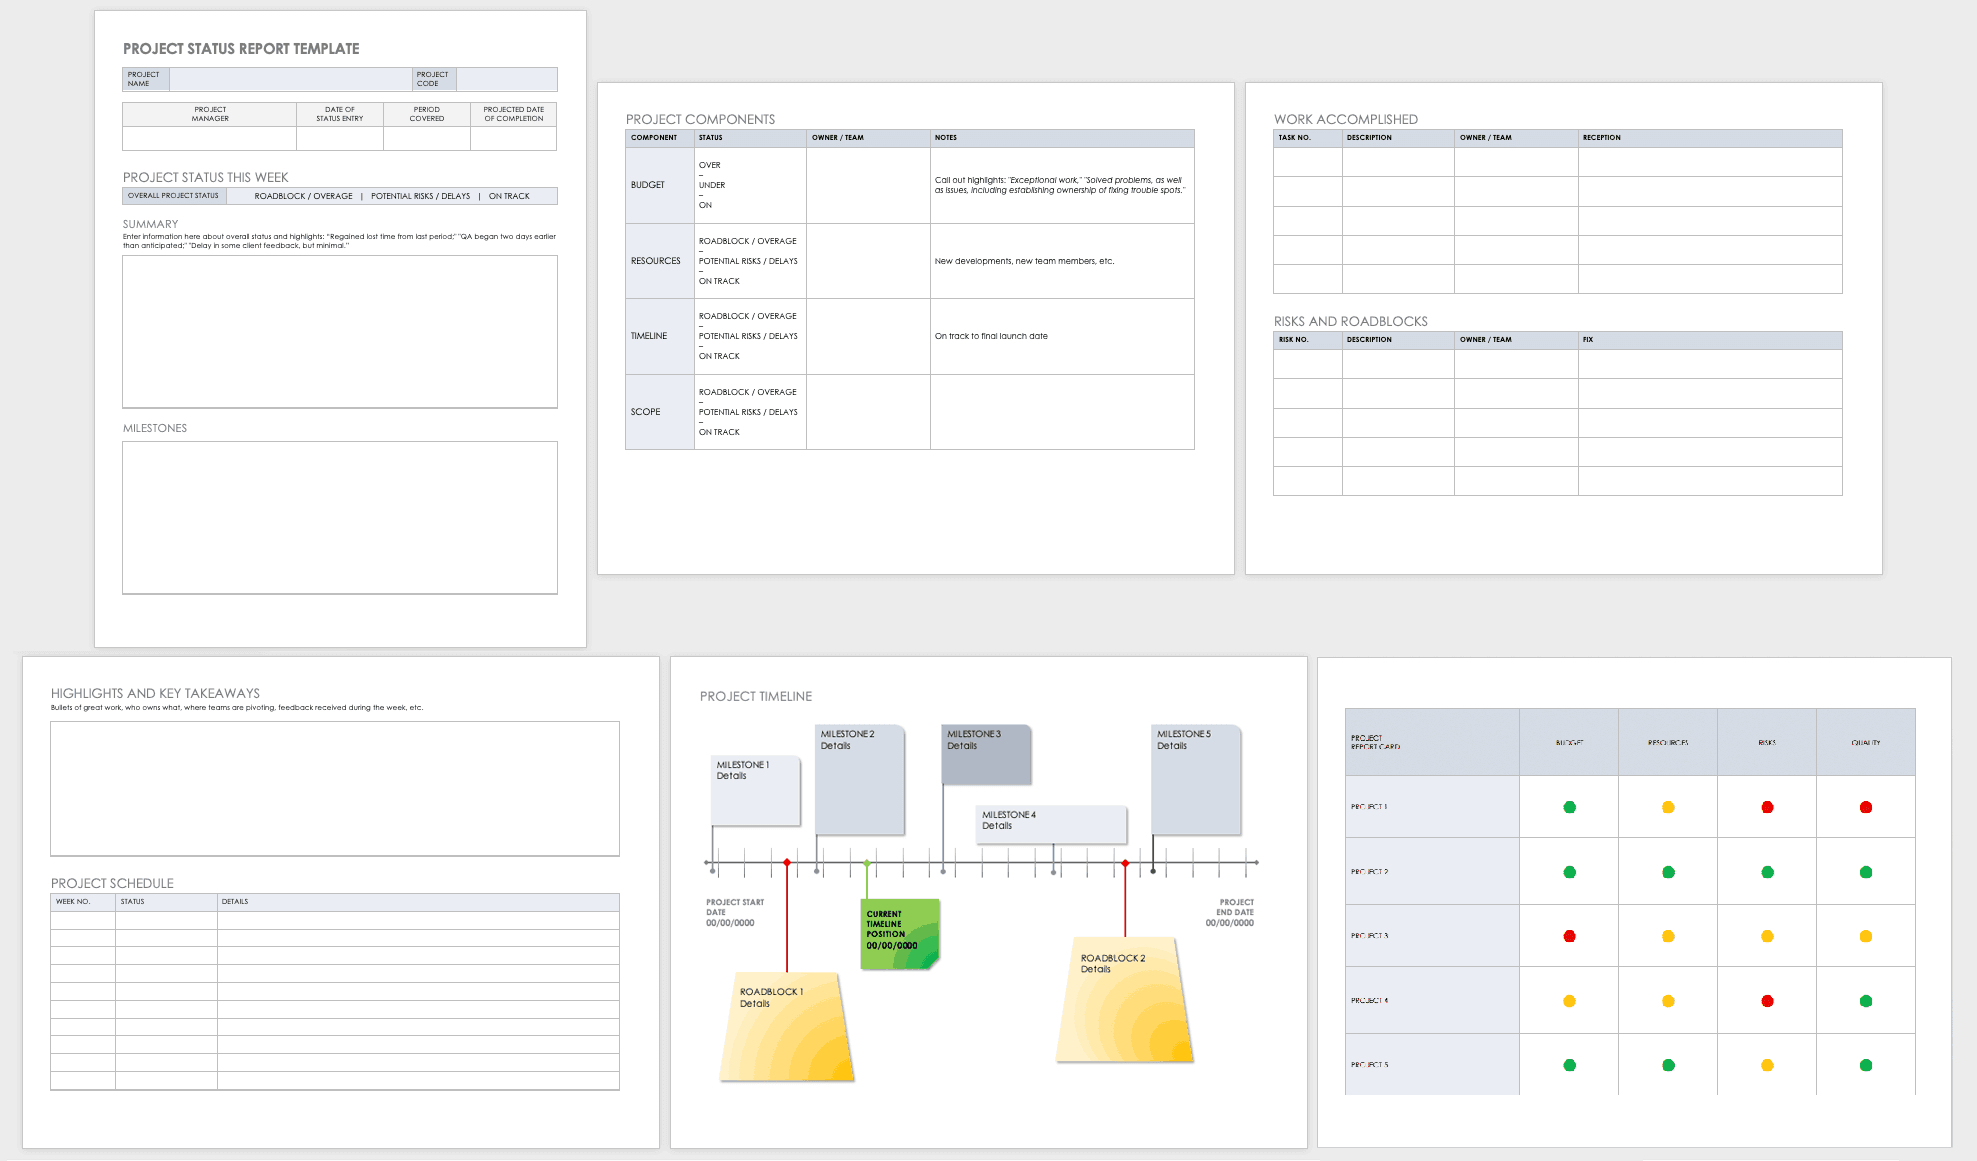 Free Project Report Templates | Smartsheet Intended For Check Out Report Template